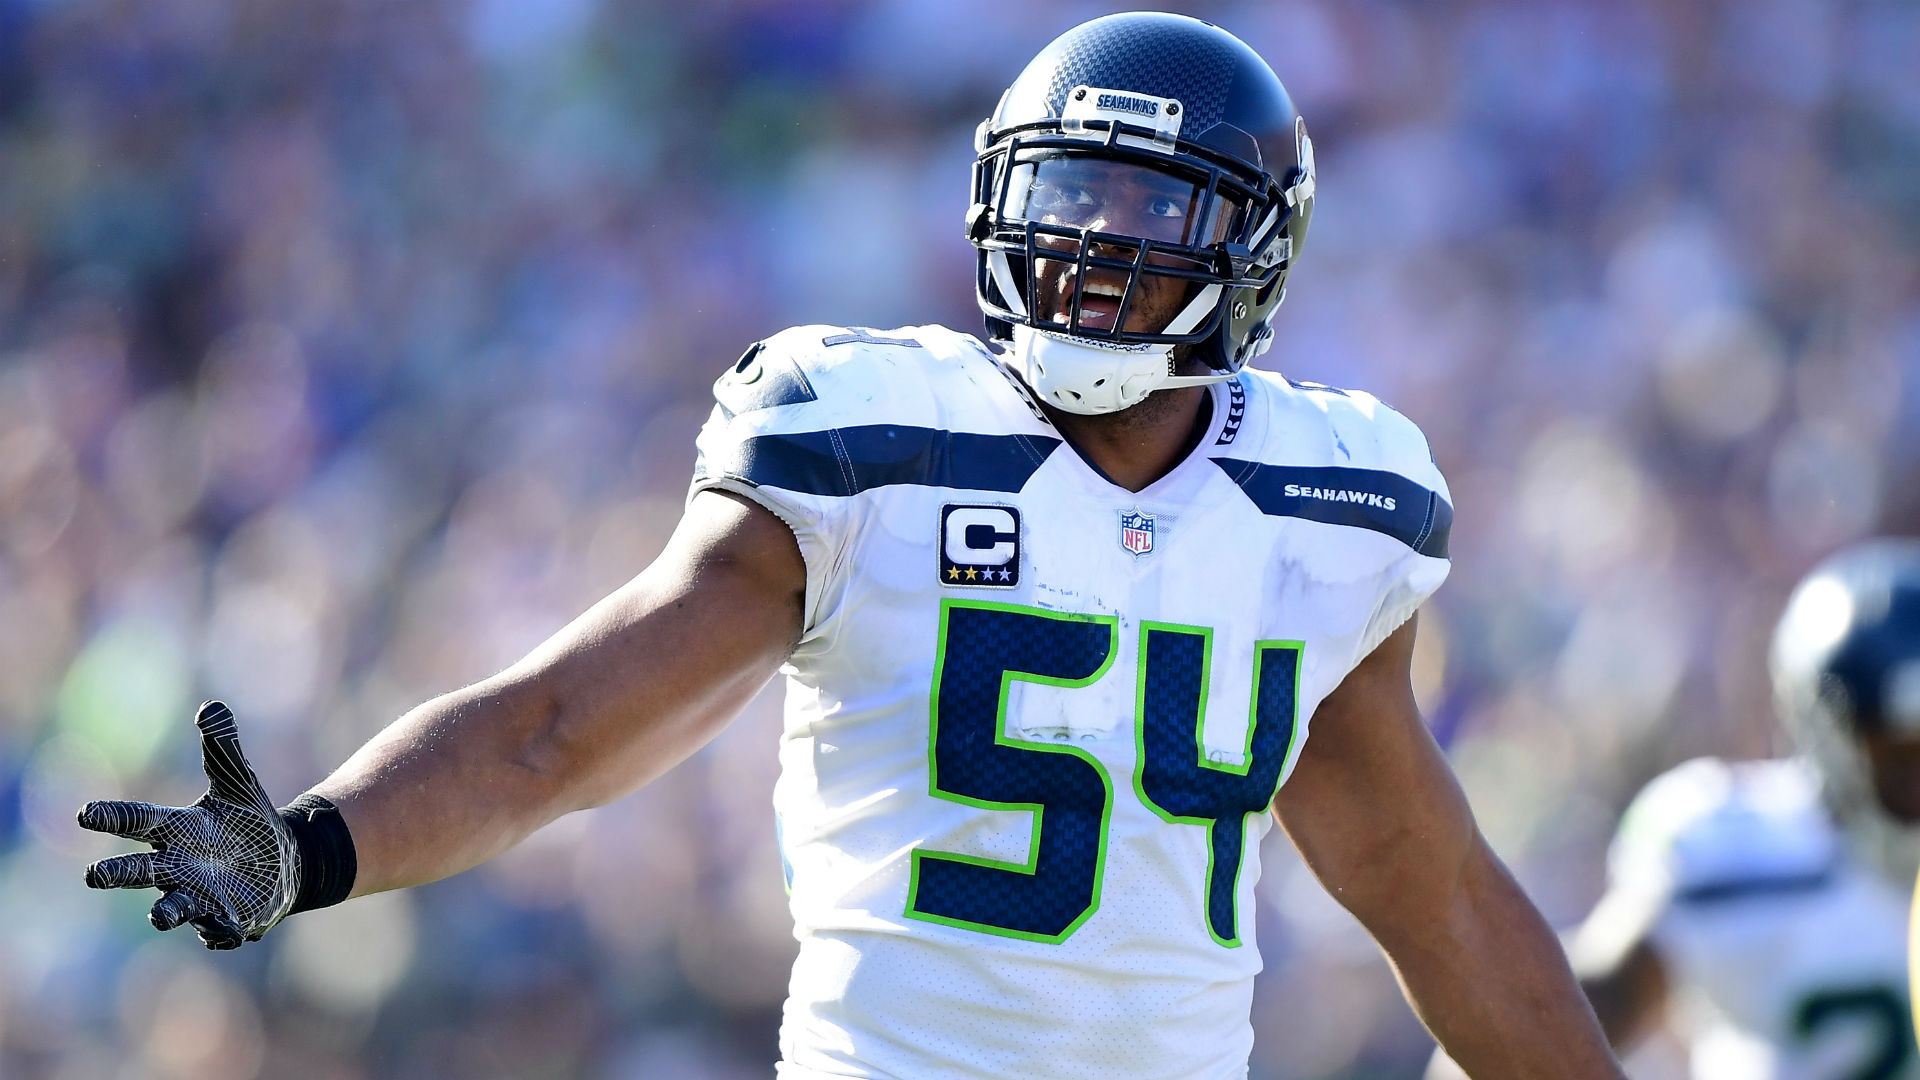 Seahawks All-Pro linebacker Bobby Wagner sidelined after 'procedure'